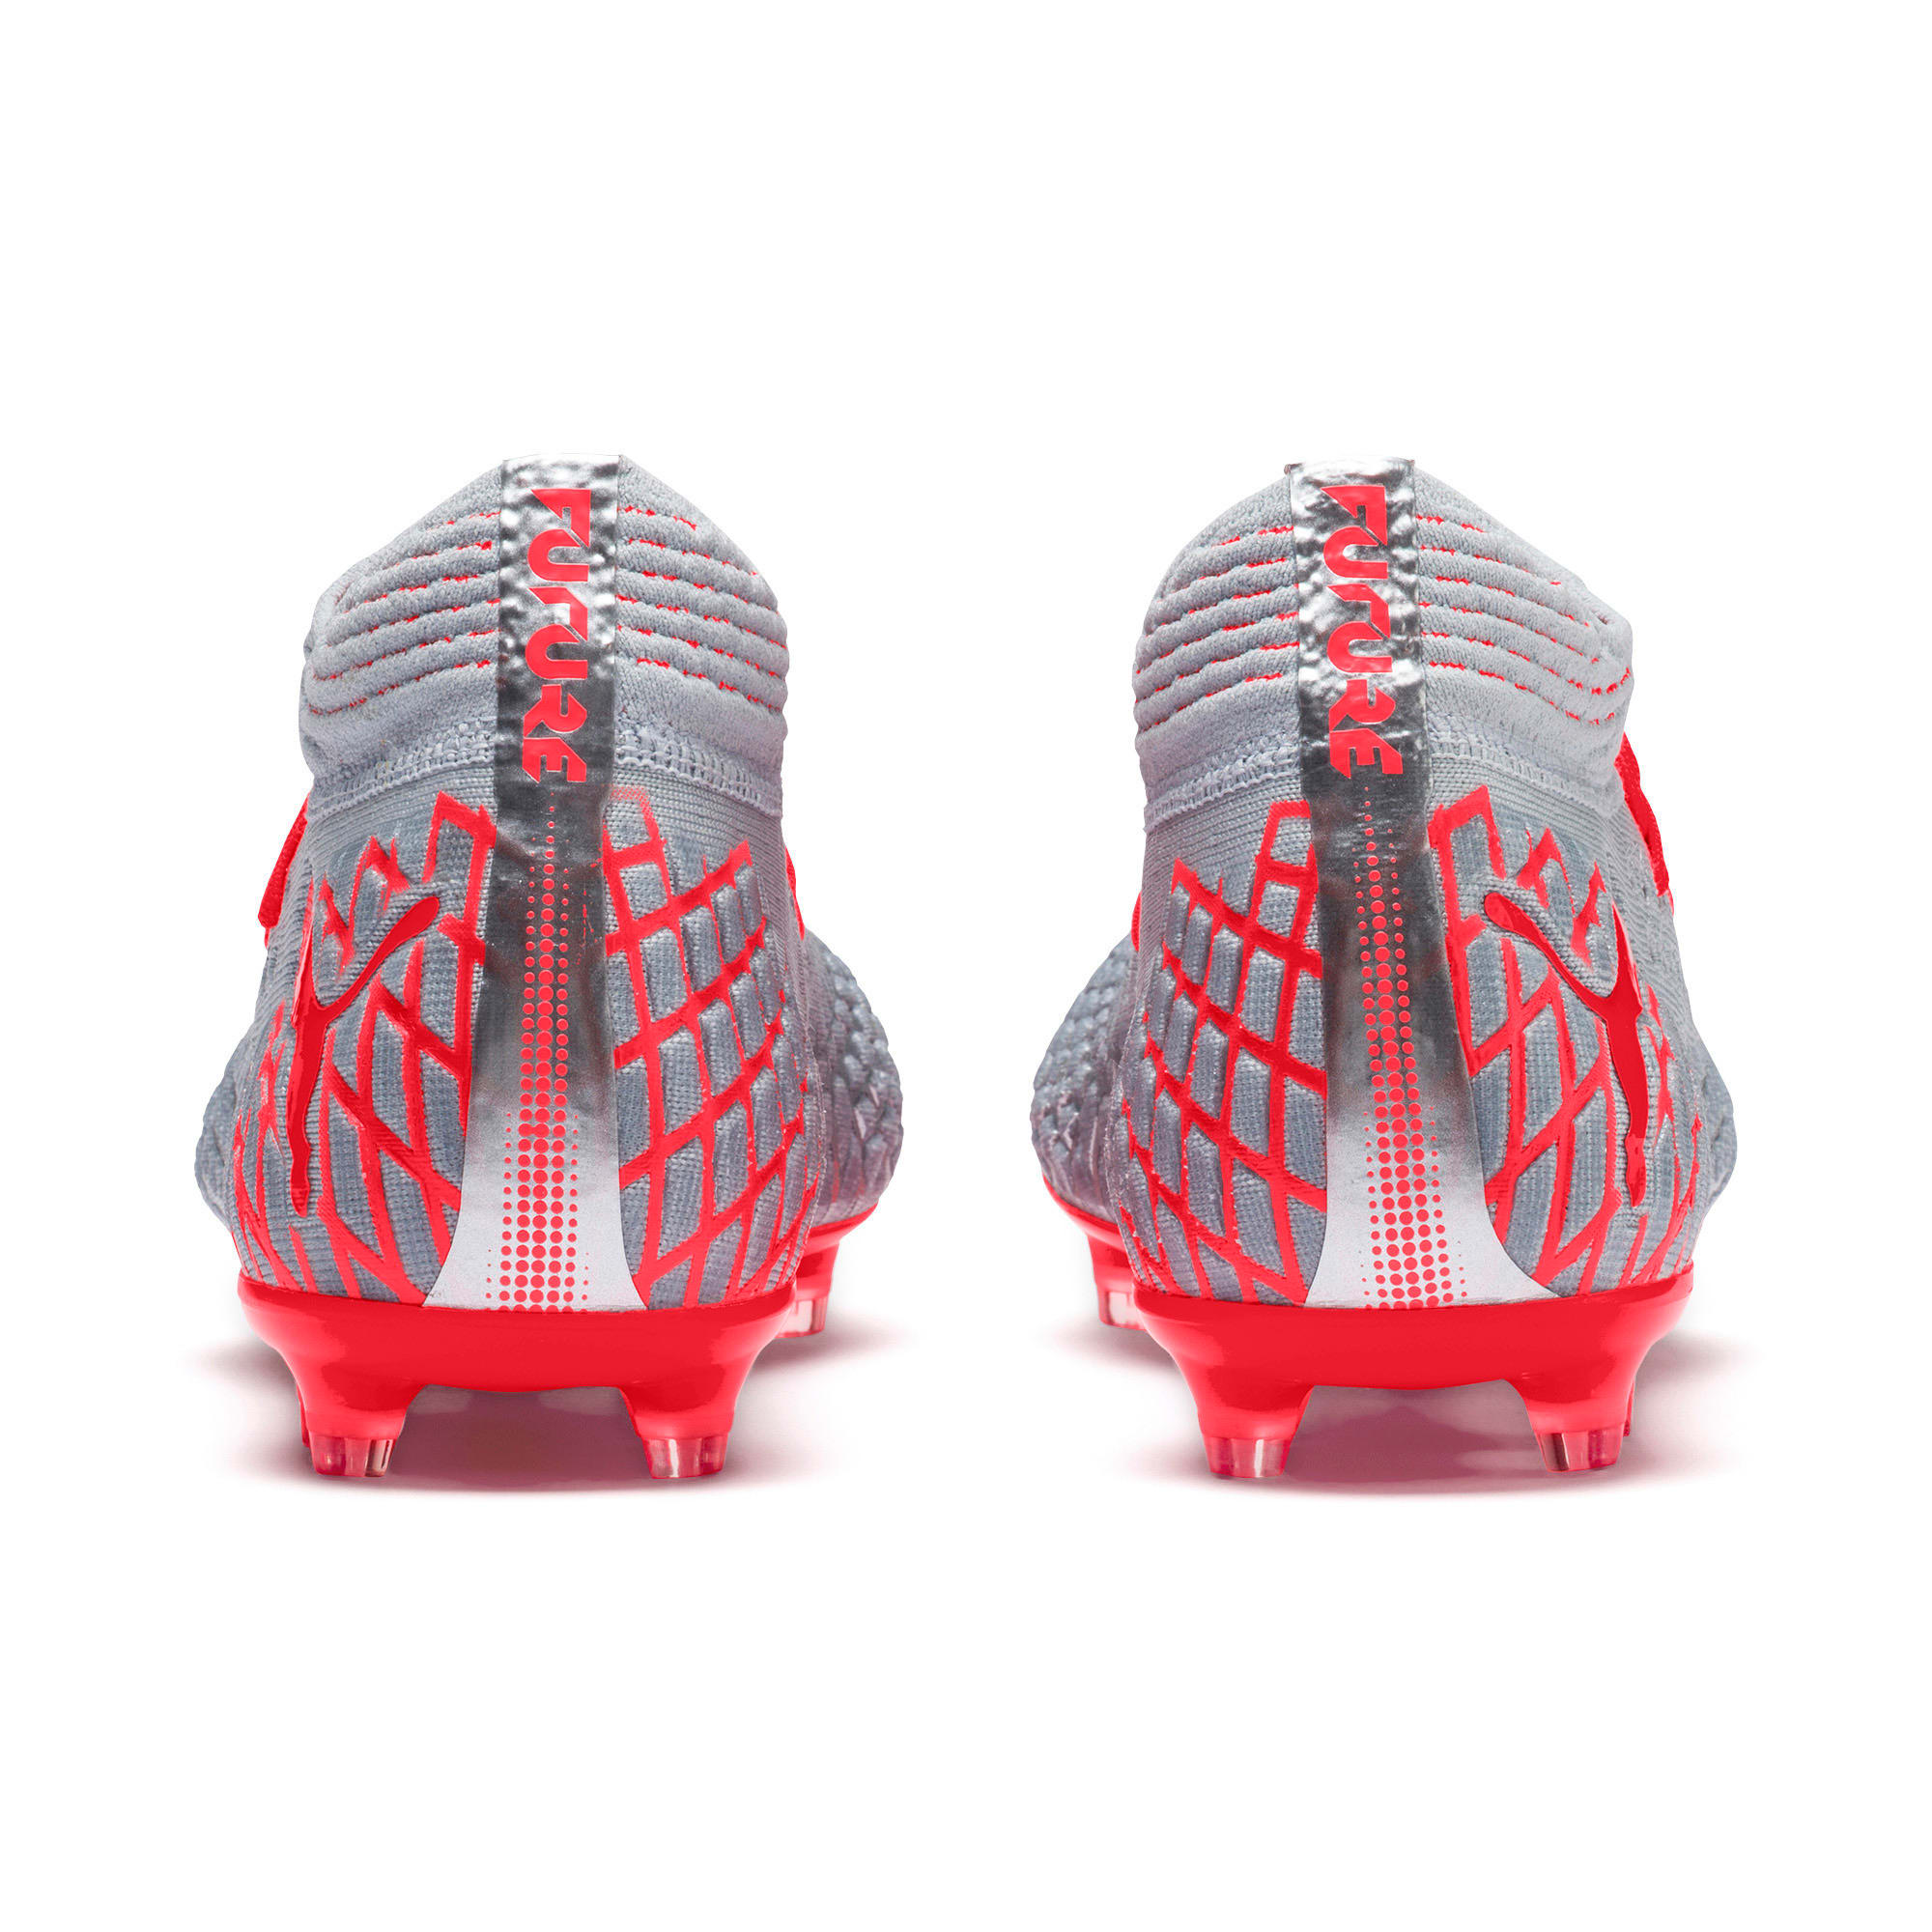 Thumbnail 5 of FUTURE 4.1 NETFIT FG/AG Men's Football Boots, Blue-Nrgy Red-High Risk Red, medium-IND